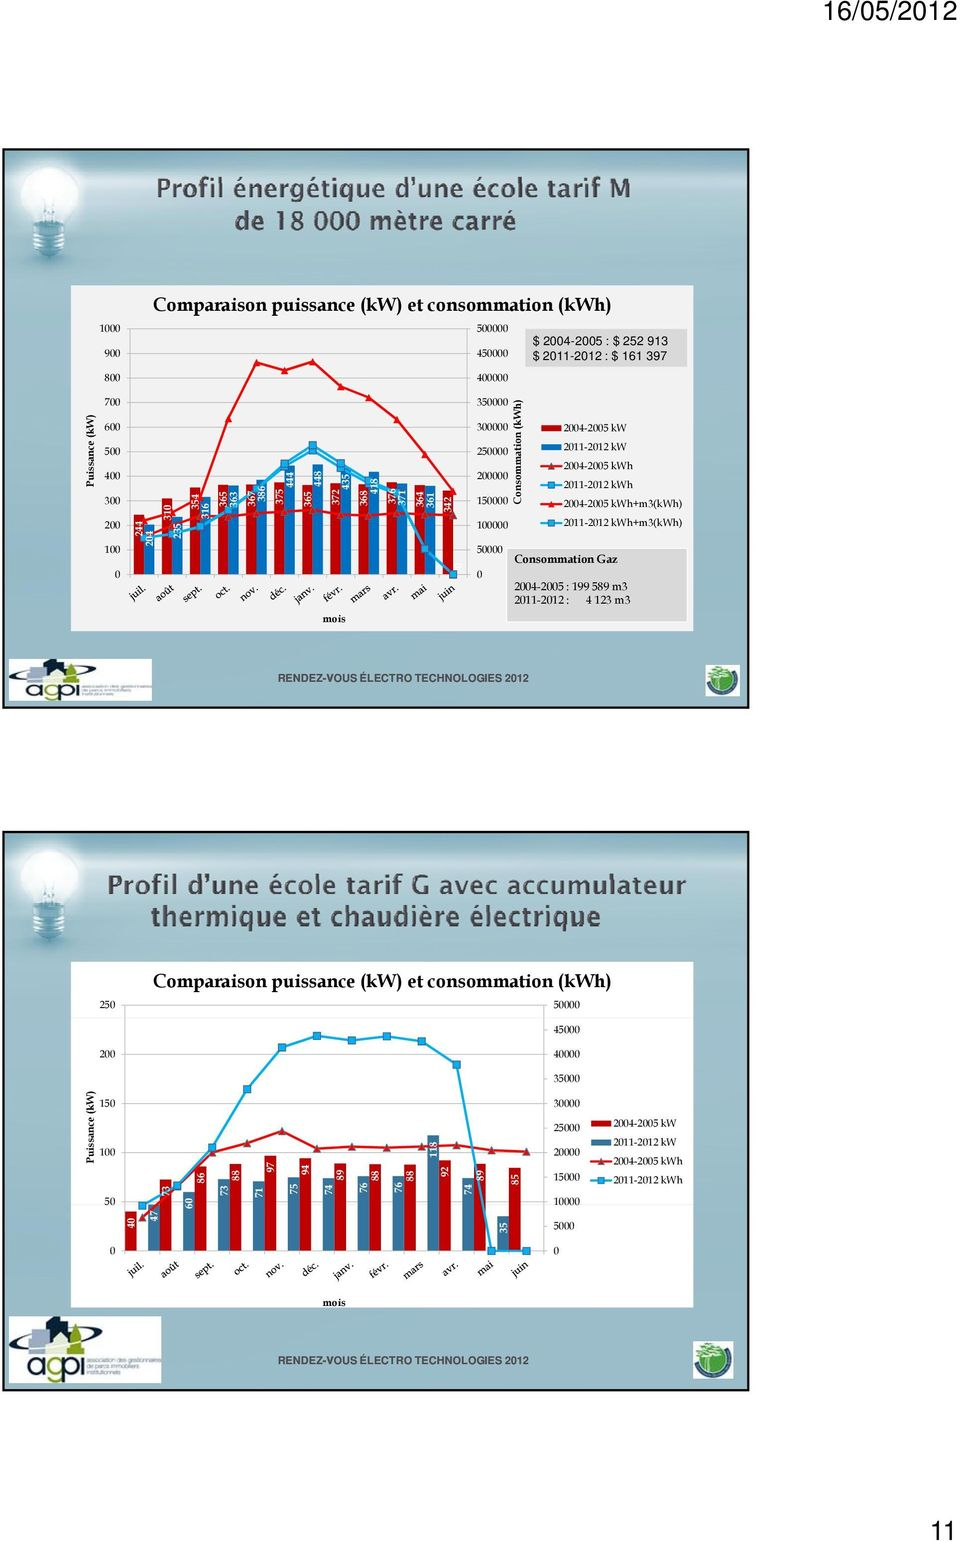 24-25 kwh+m3(kwh) 211-212212 kwh+m3(kwh) Consommation Gaz 24-25 : 199 589 m3 211-212 : 4 123 m3 25 Comparaison puissance (kw) et consommation (kwh) 5 45 2